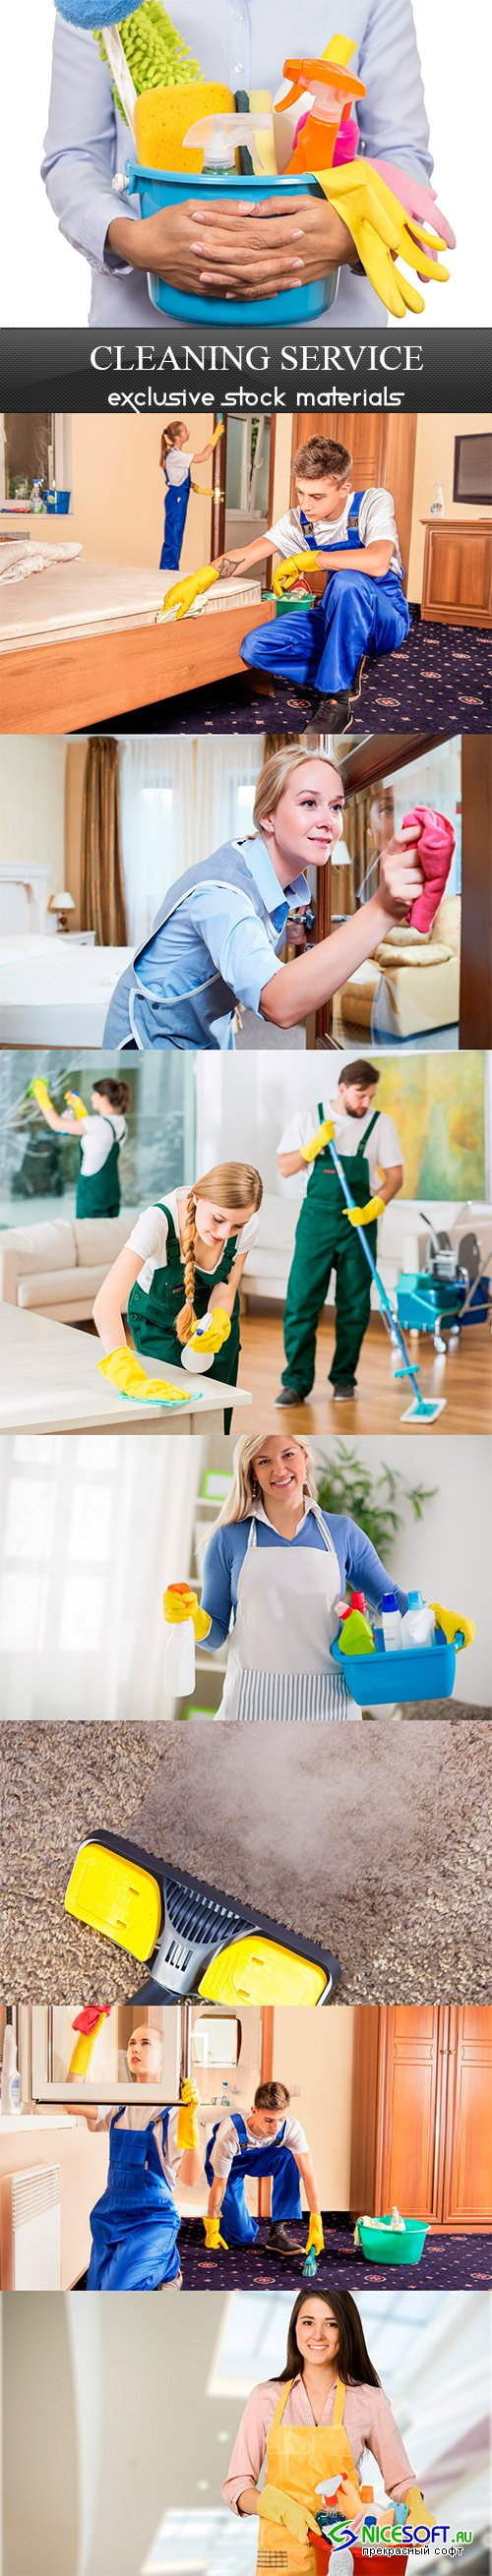 Cleaning service - 8UHQ JPEG